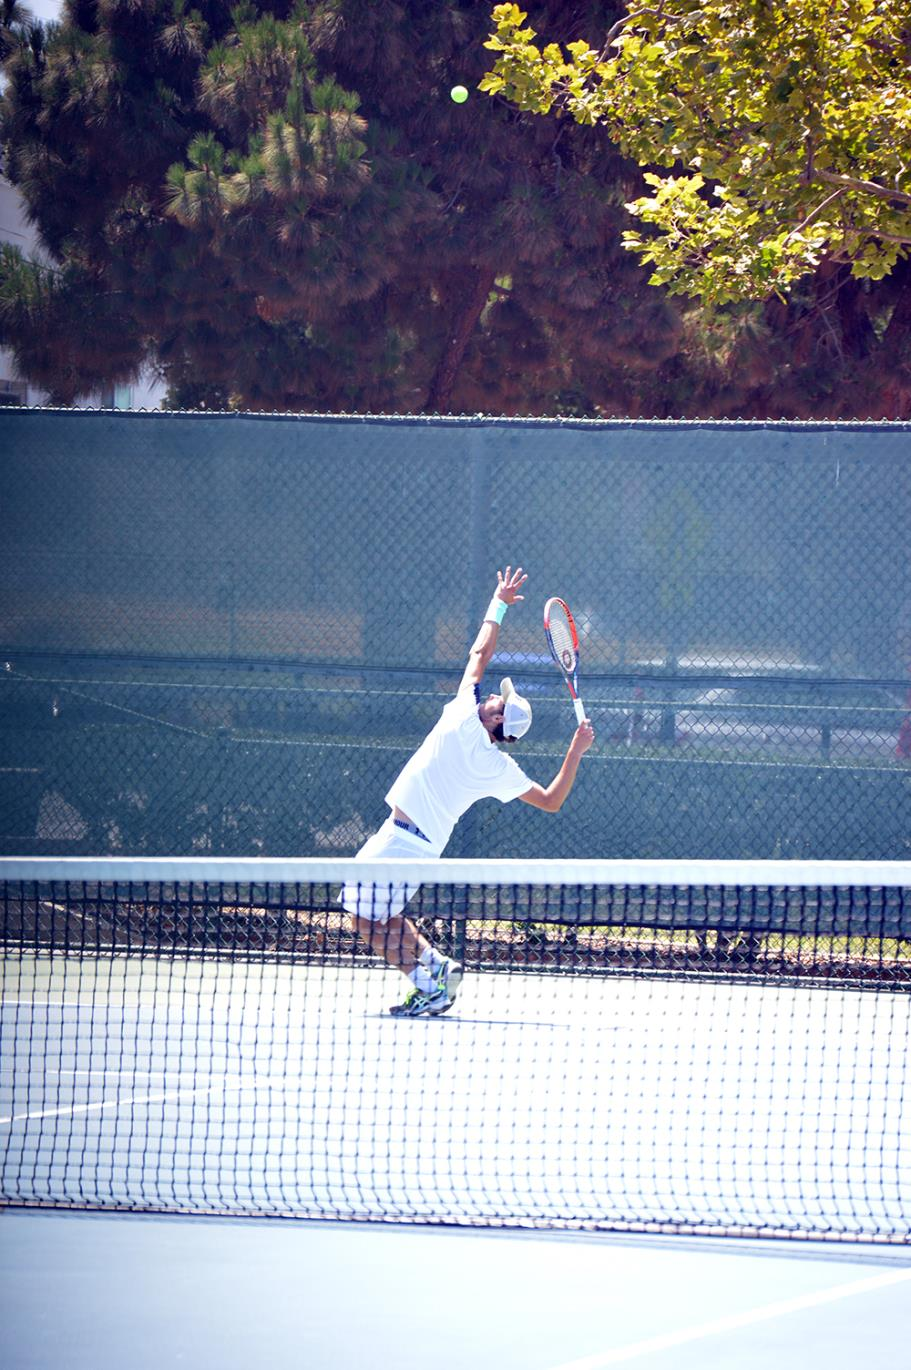 Player serving during a singles match at Live Oak Park Tennis Courts